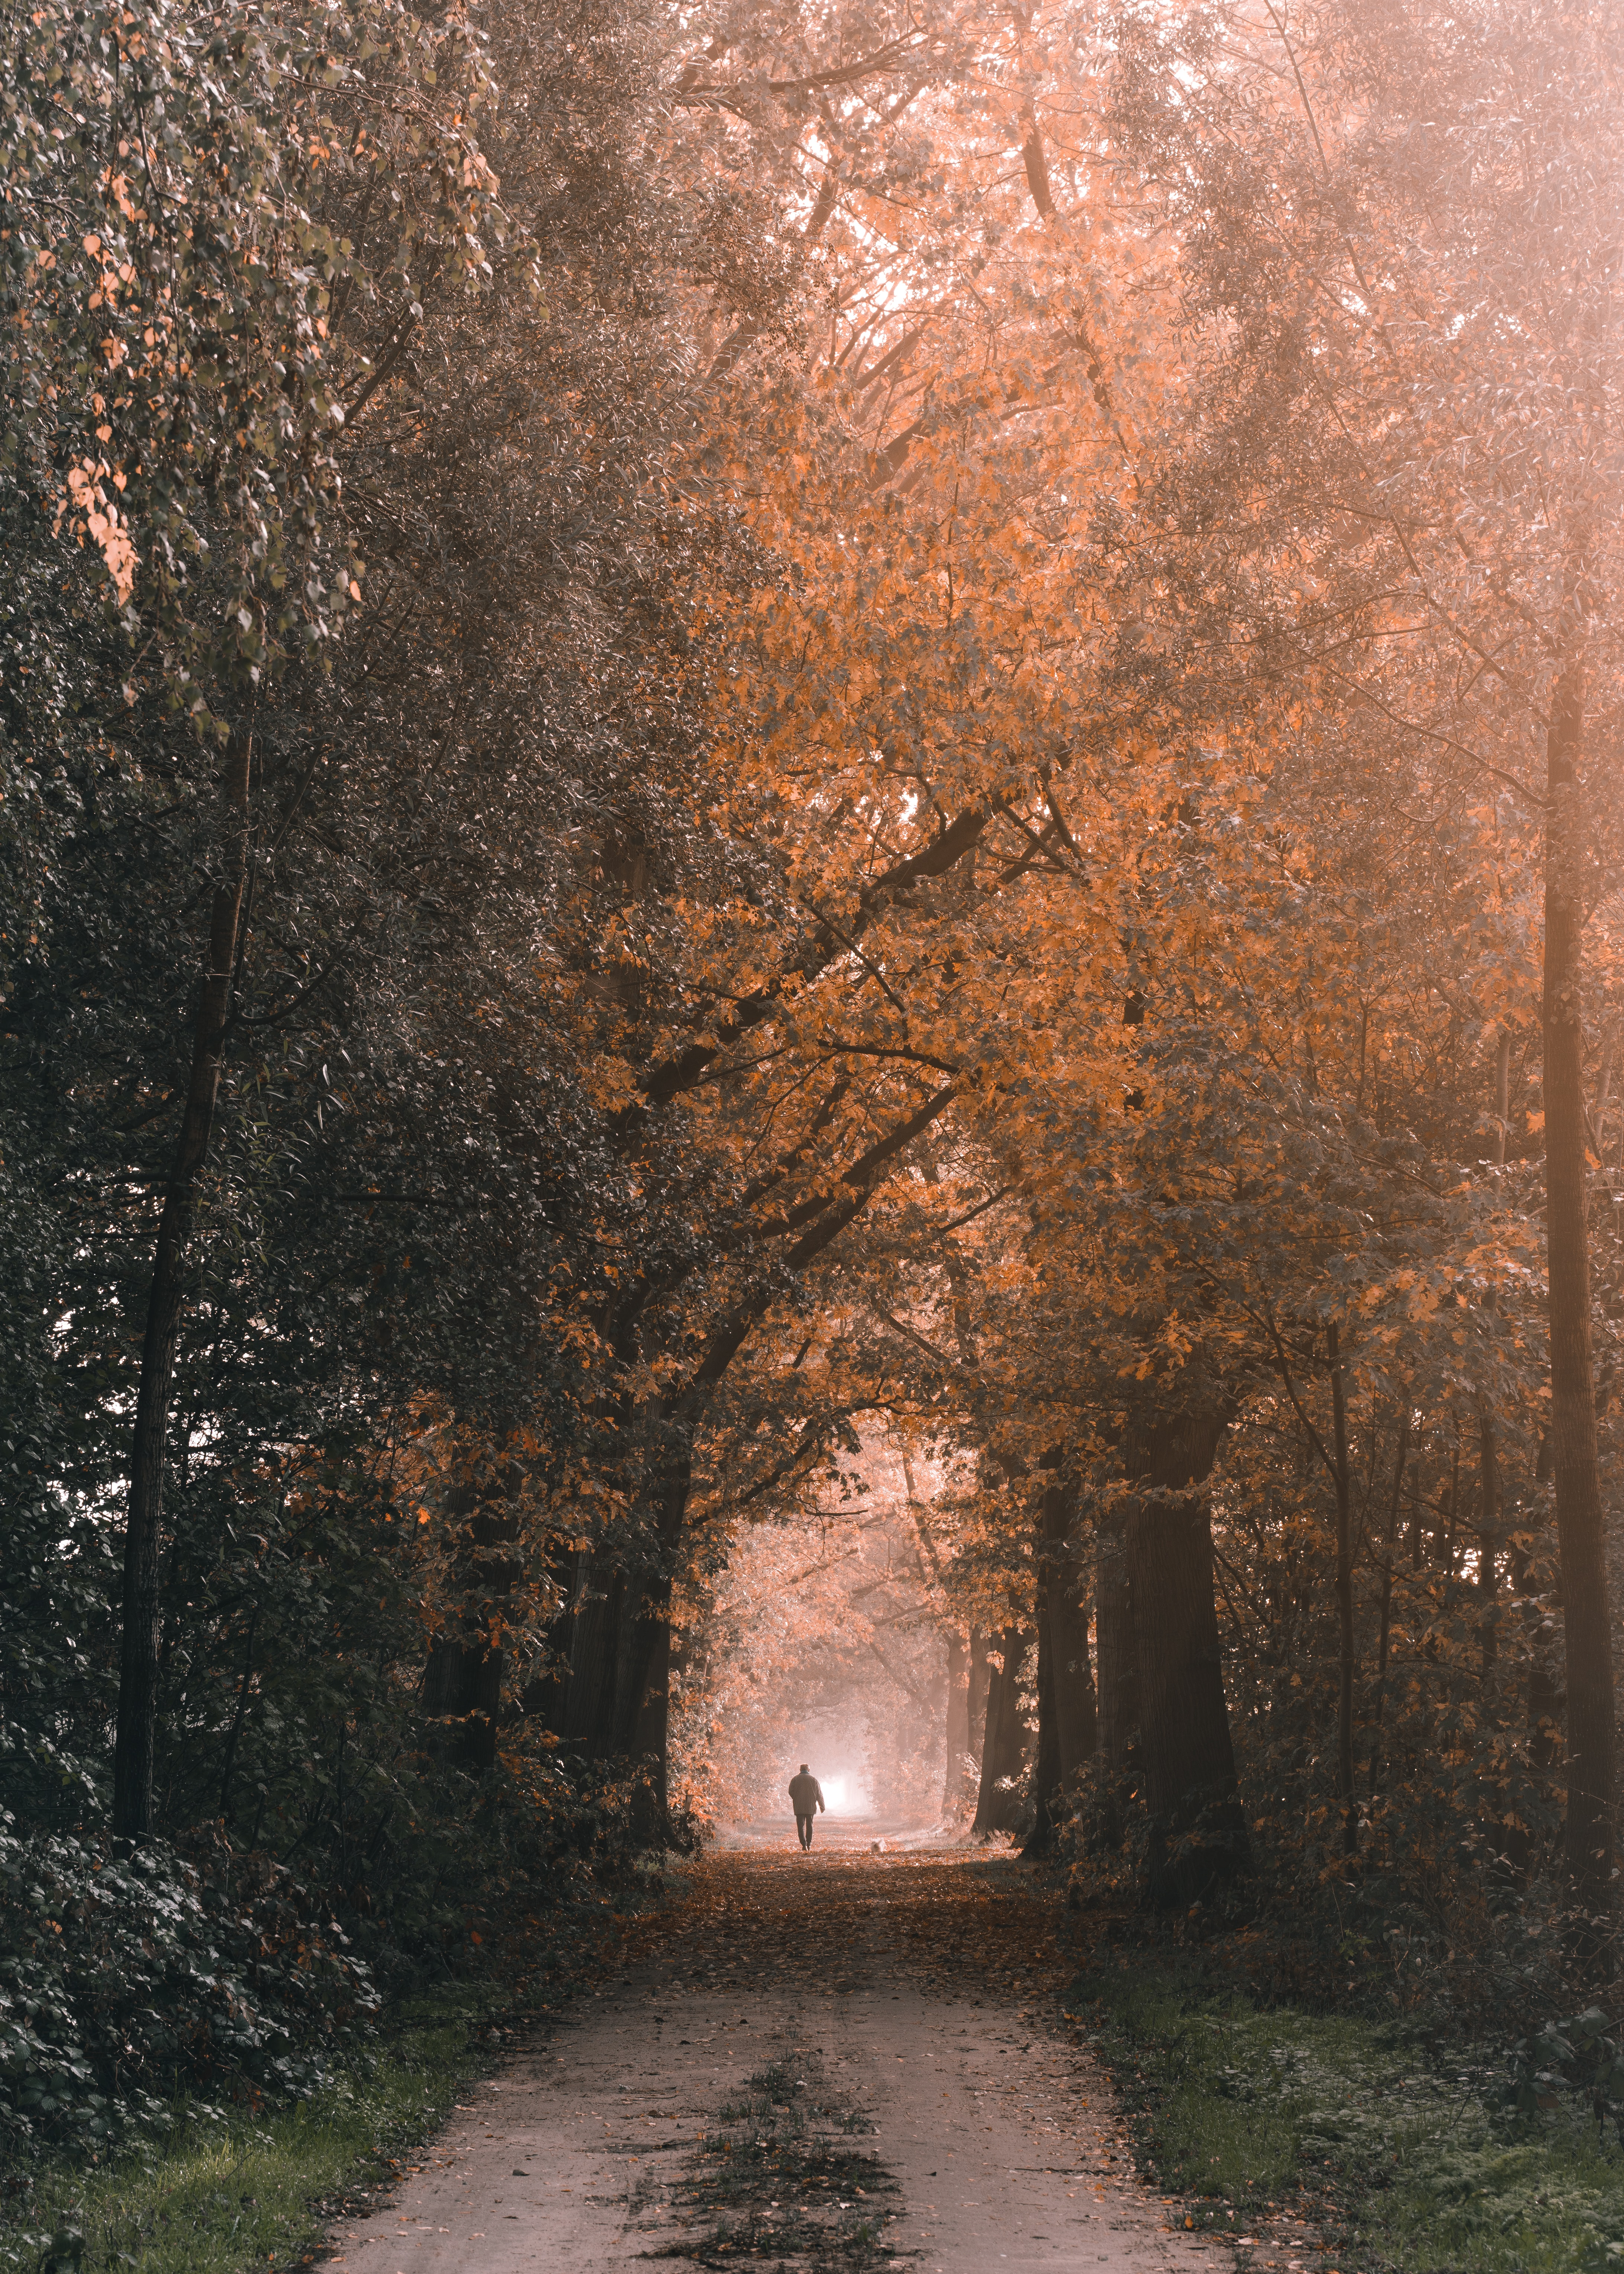 94702 download wallpaper Miscellanea, Miscellaneous, Silhouette, Loneliness, Track, Trees, Nature screensavers and pictures for free